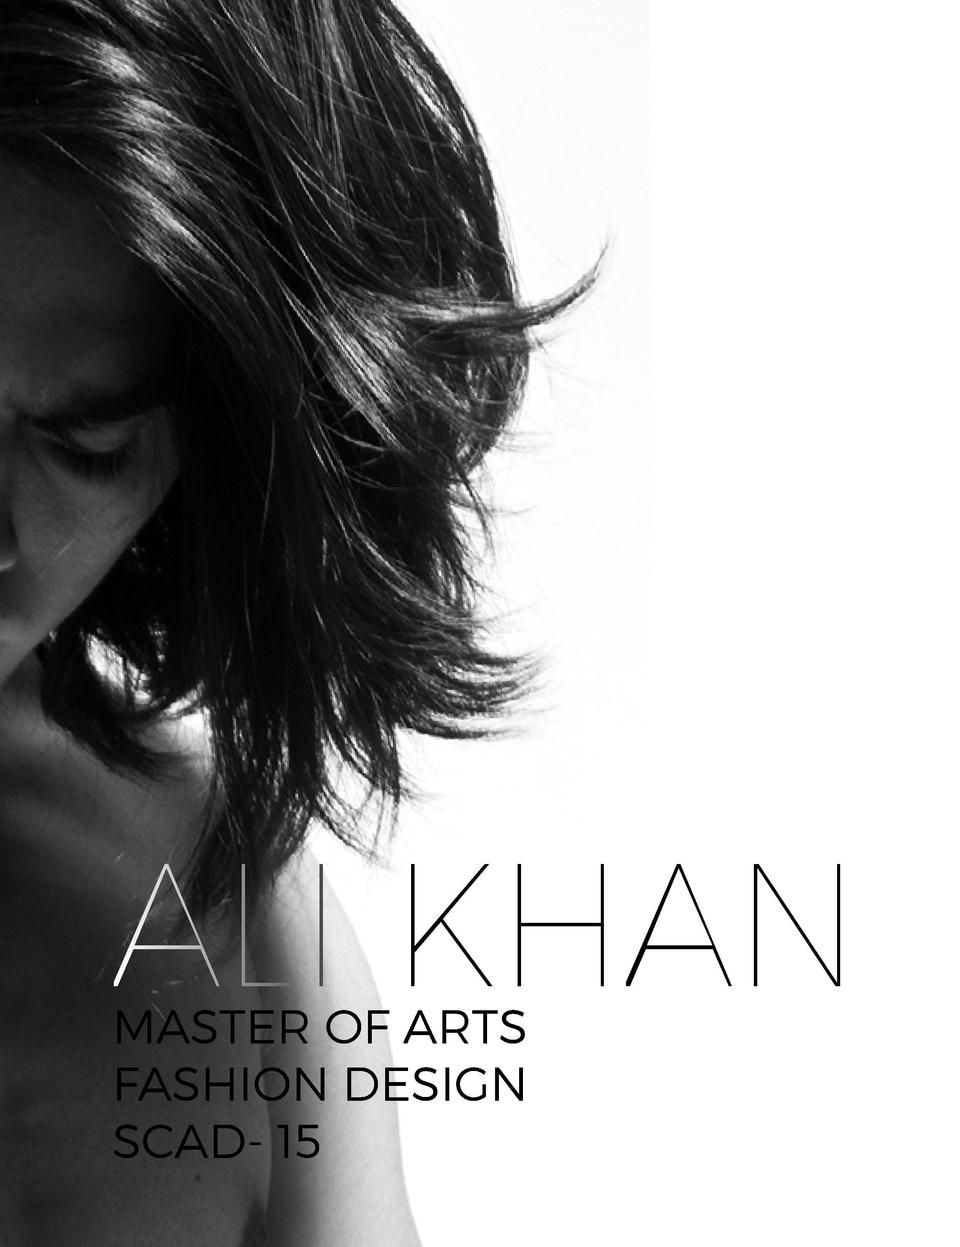 ALI KHAN MASTER OF ARTS FASHION DESIGN SCAD- 15